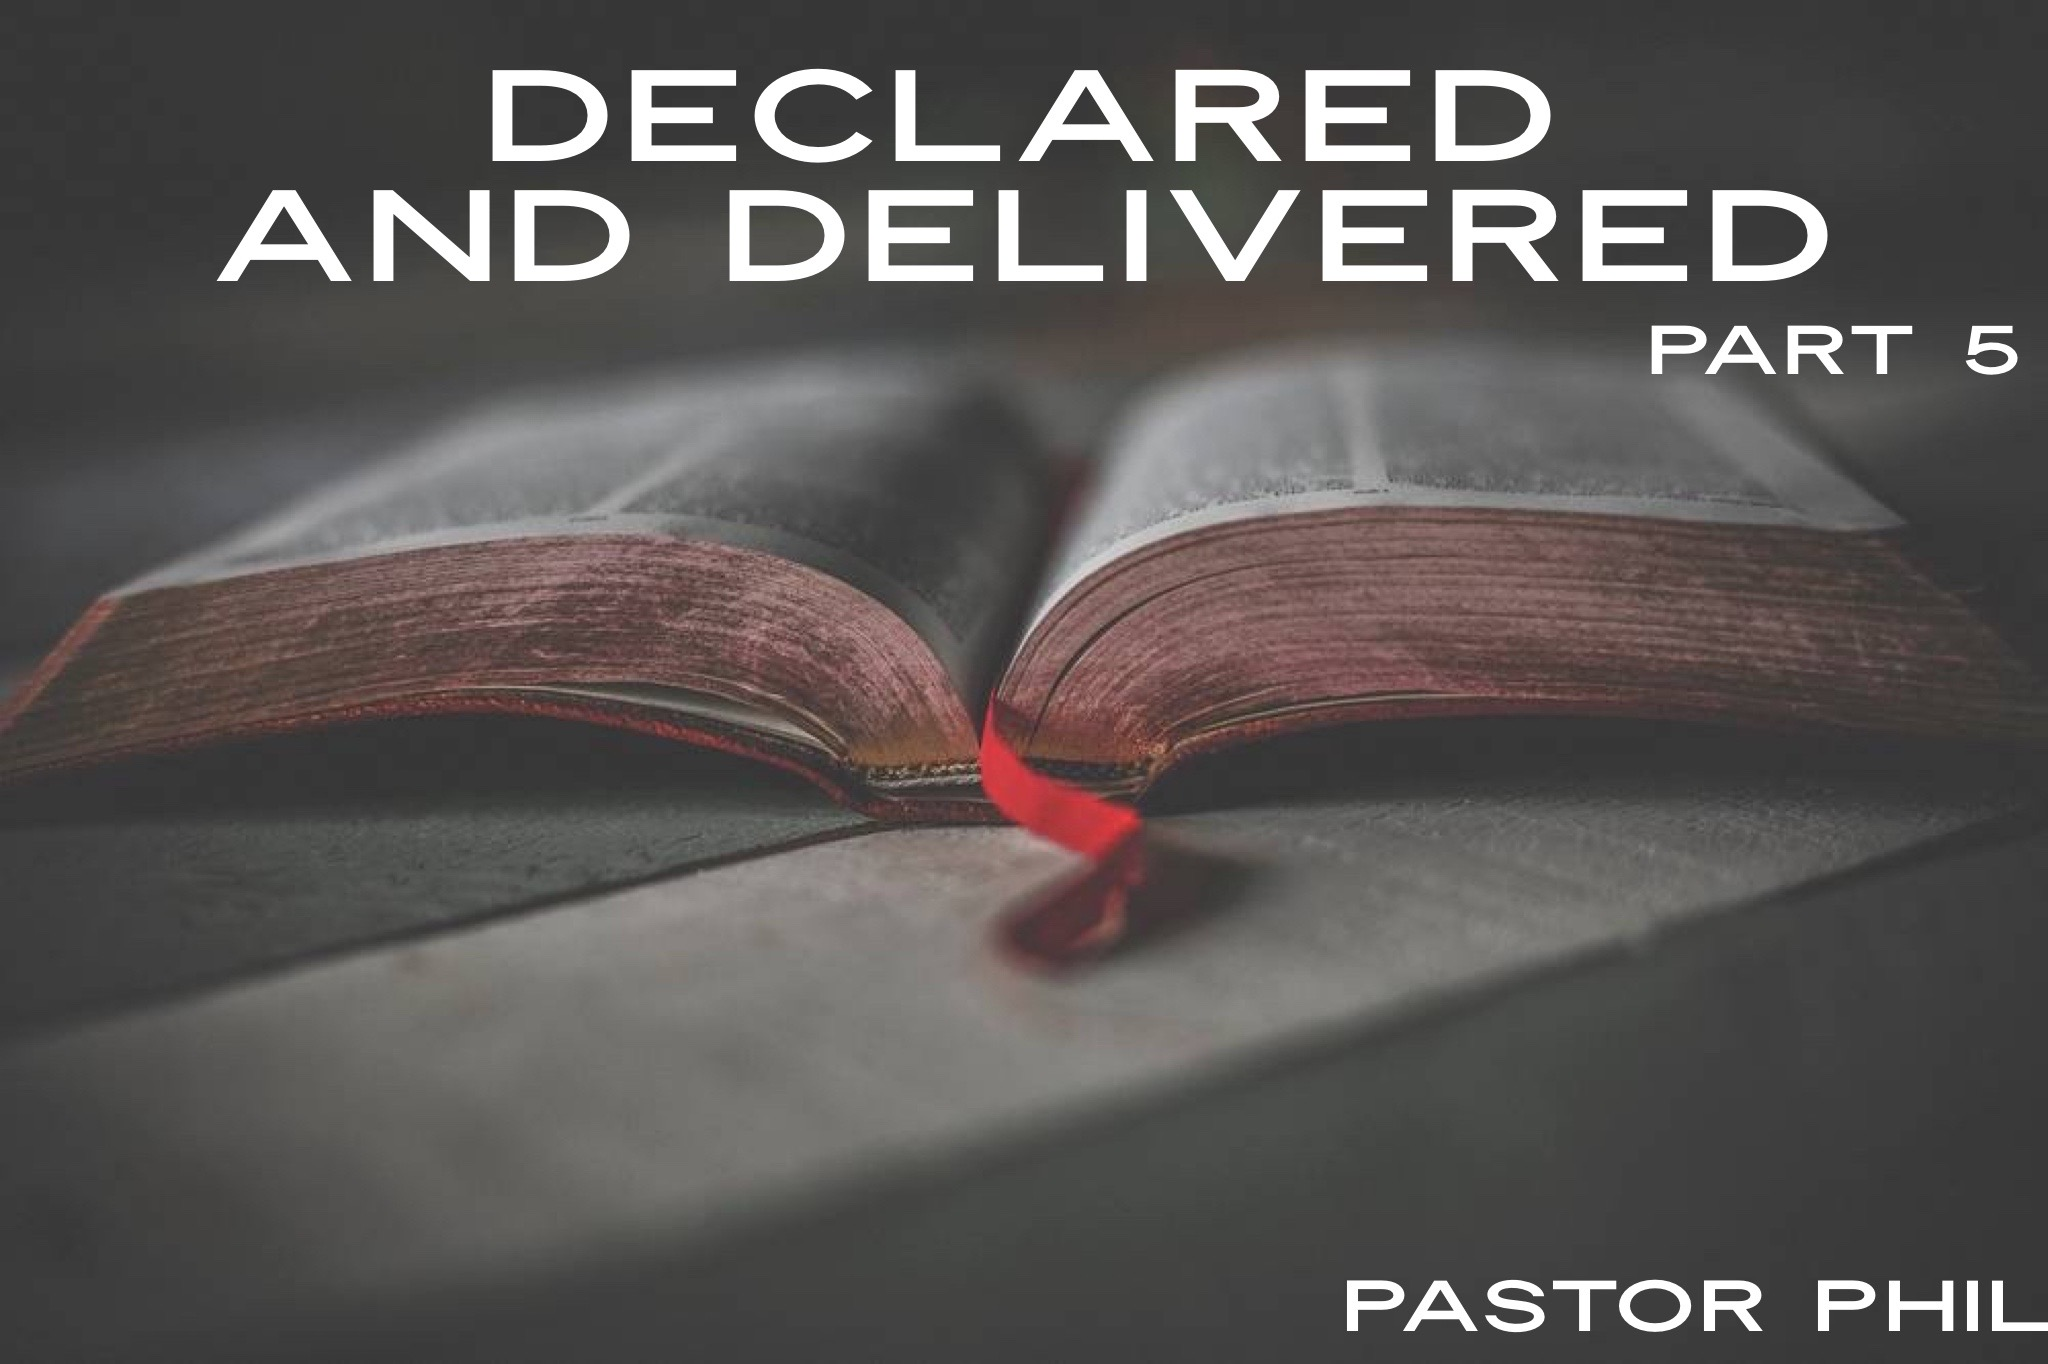 Declared and Delivered Pt 5